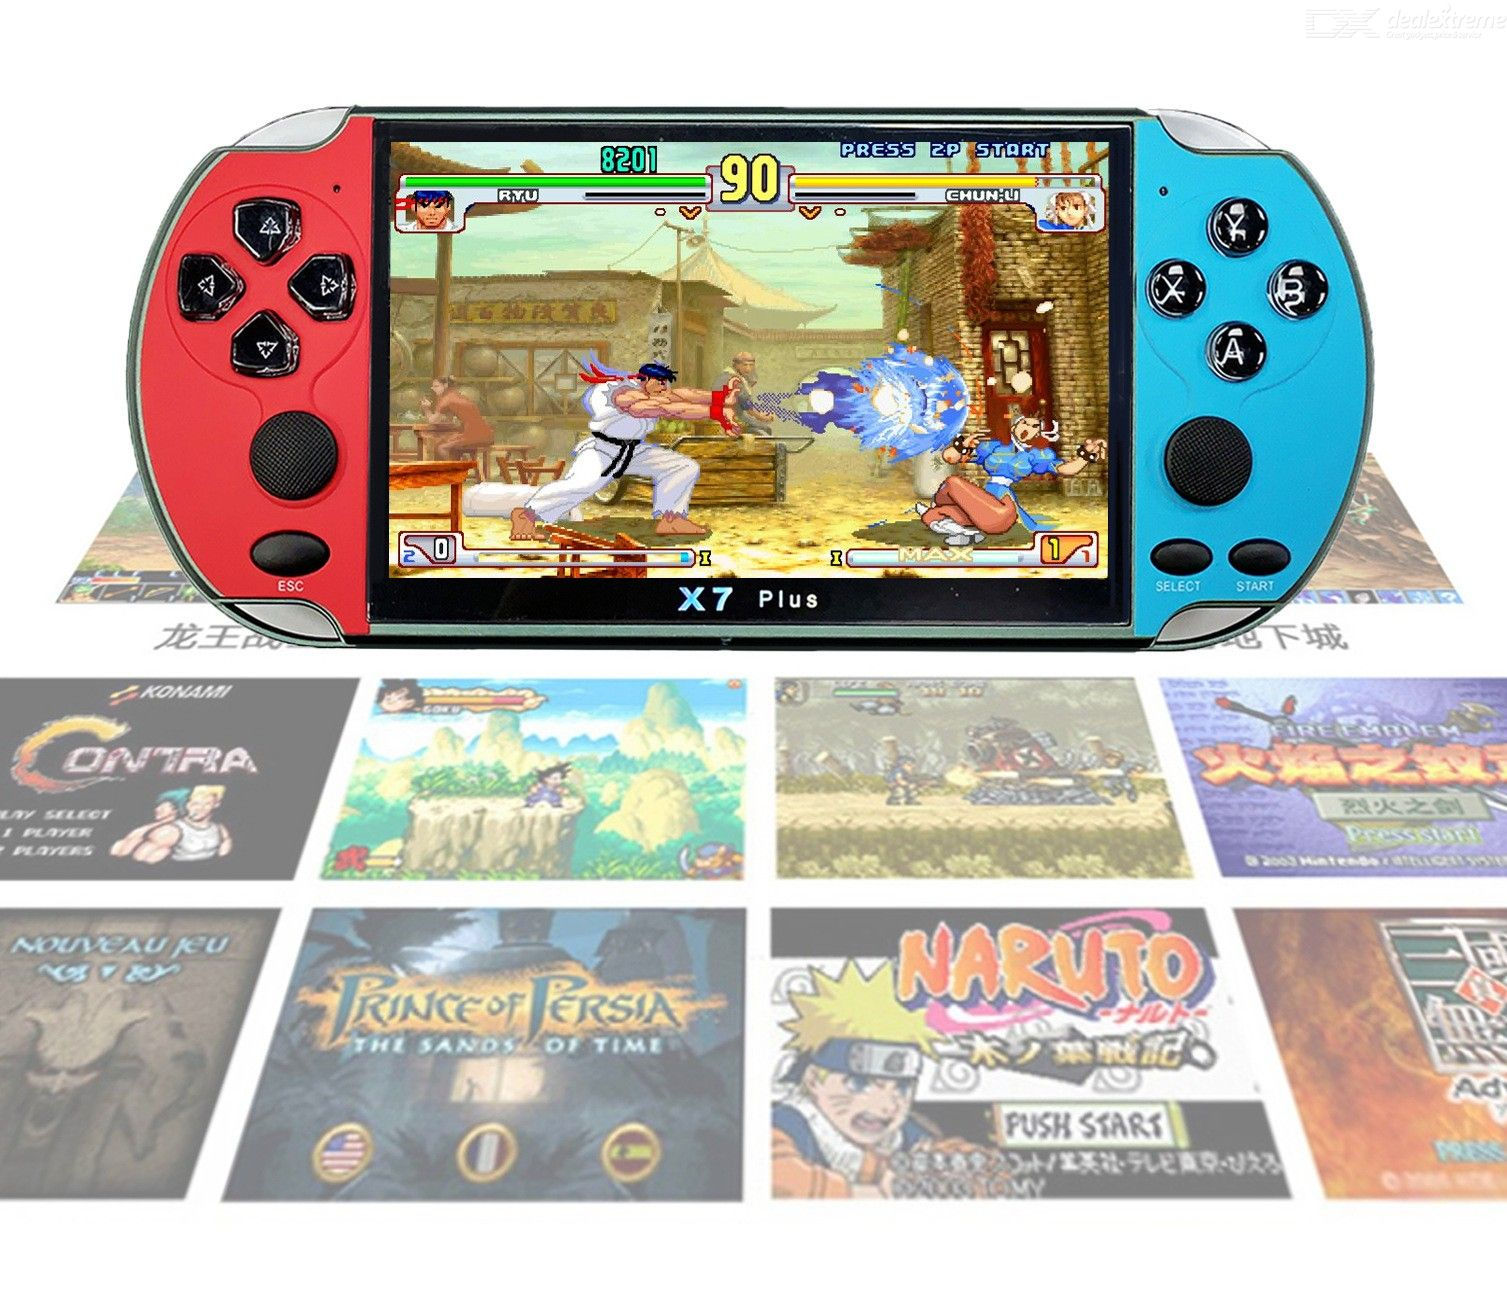 X7 PLUS 5.1 Inch Large Screen PSP Handheld Game Machine, Retro Classic Mini FC Game Player Support GBA / Arcade